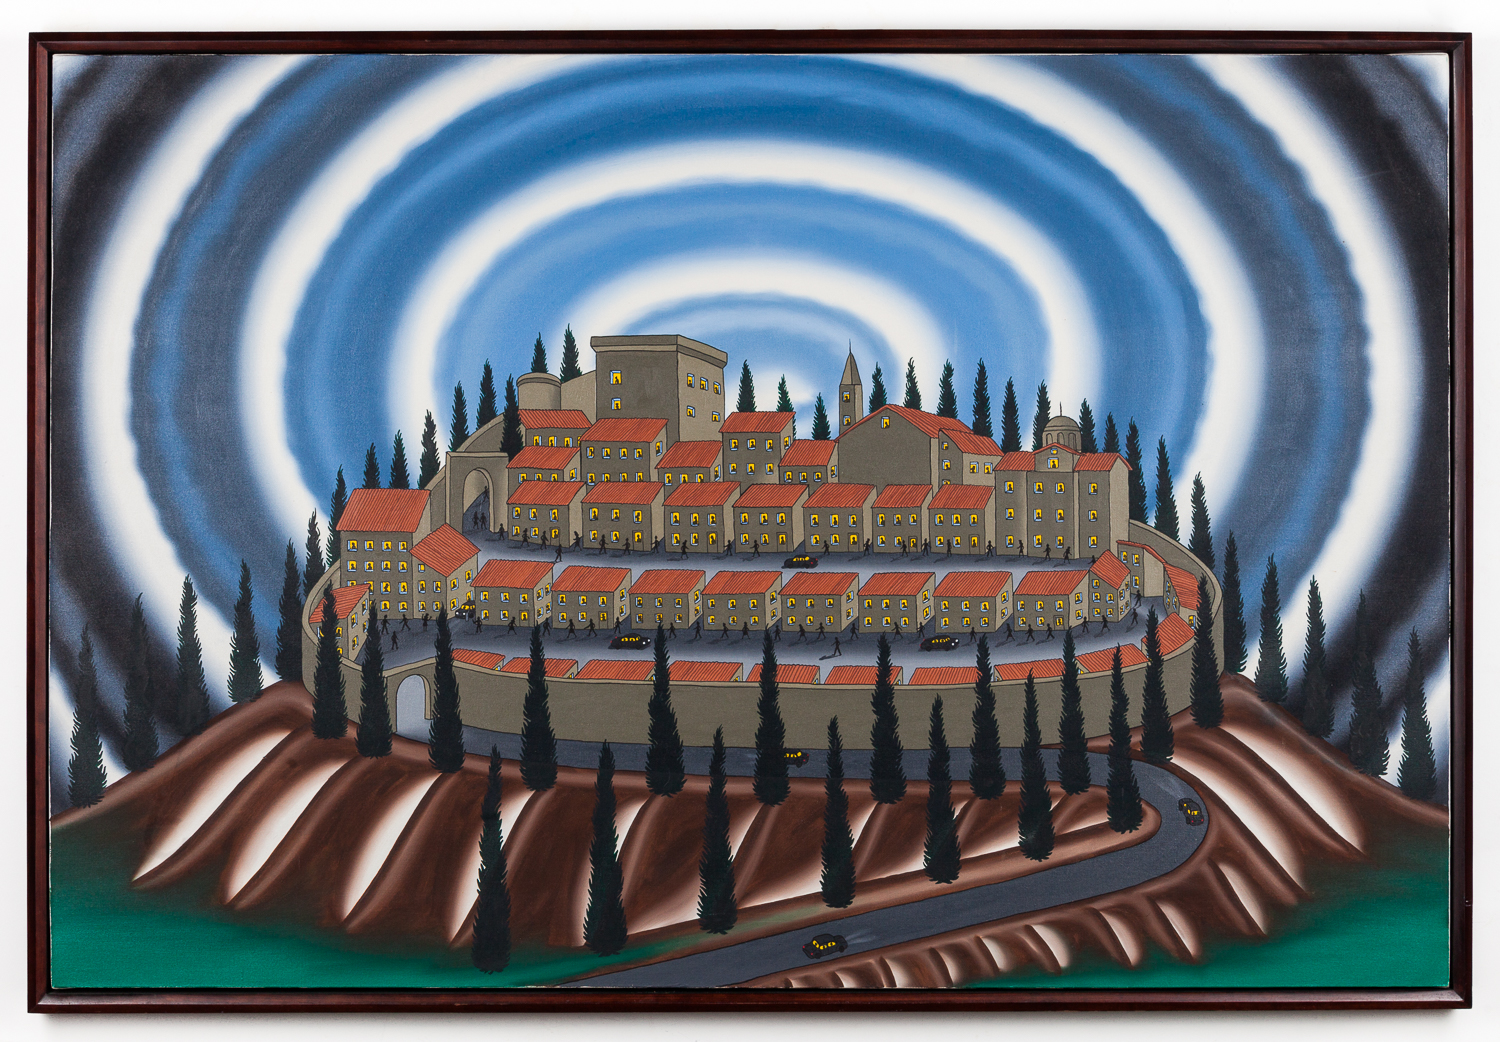 Roger Brown, A Visit To A Small Italian City, 1991, in the Gupta Moss collection, Chicago.